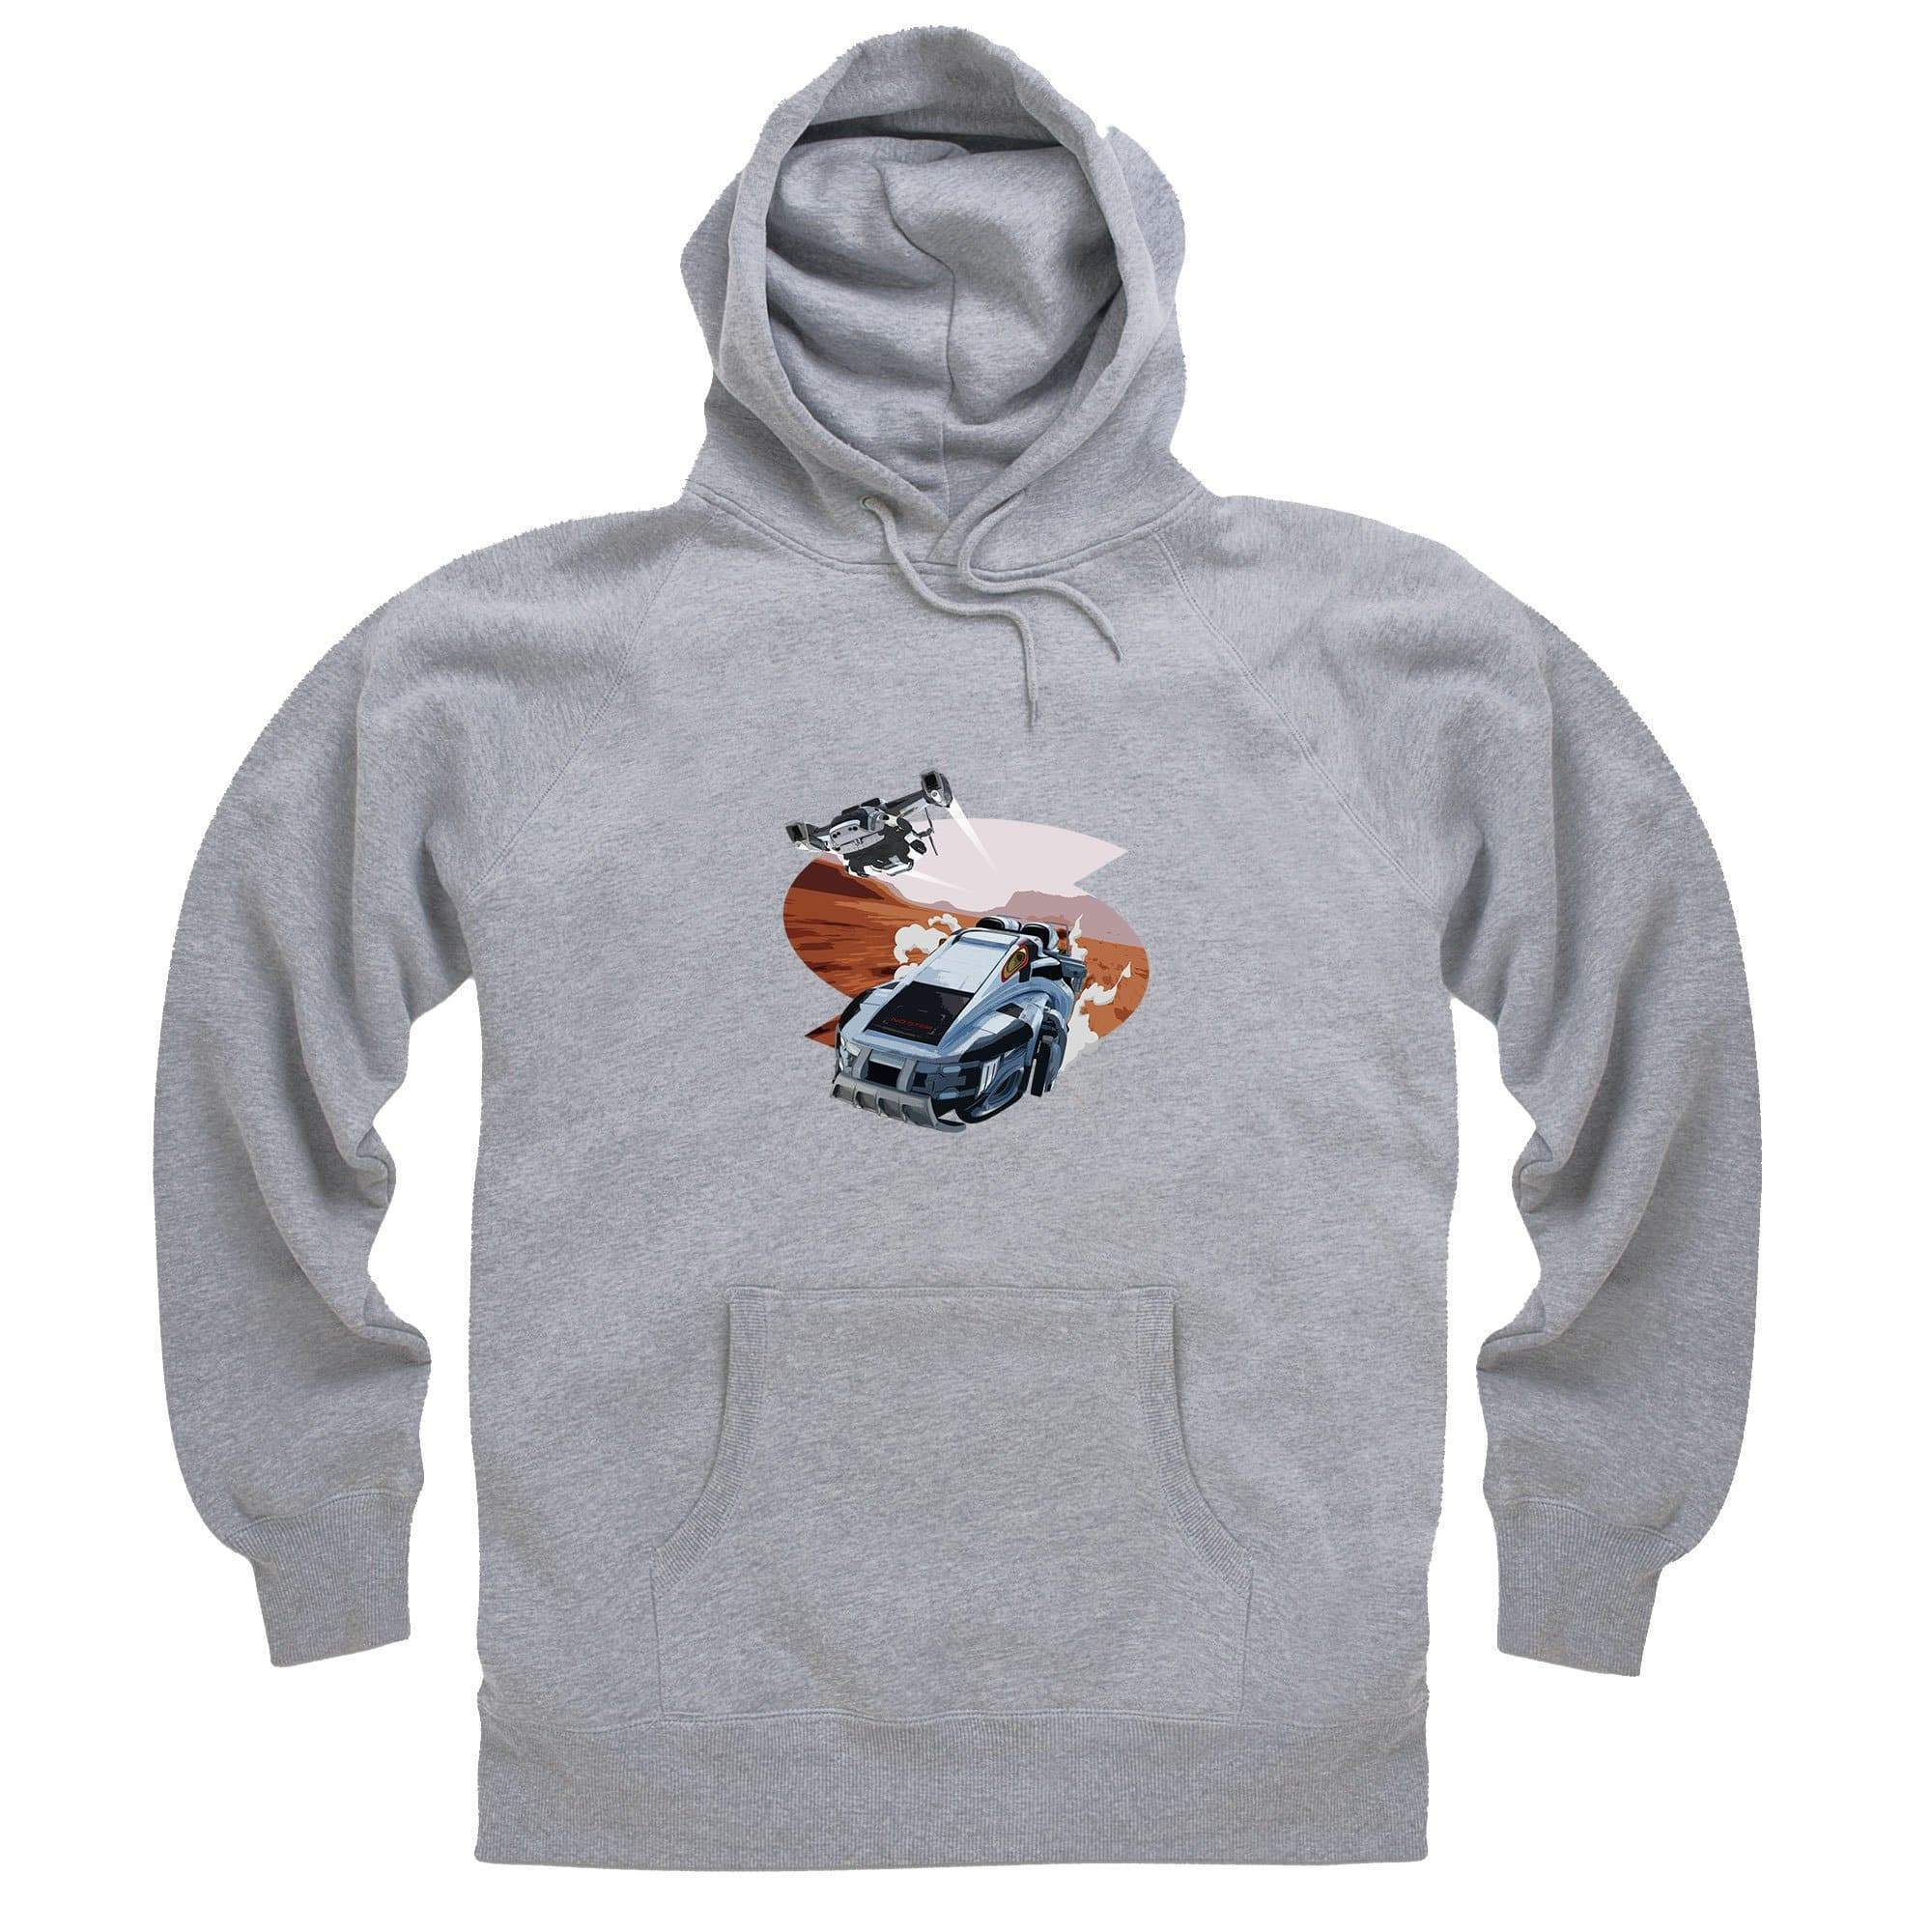 New Captain Scarlet Rhino Hoodie [Official & Exclusive] - The Gerry Anderson Store